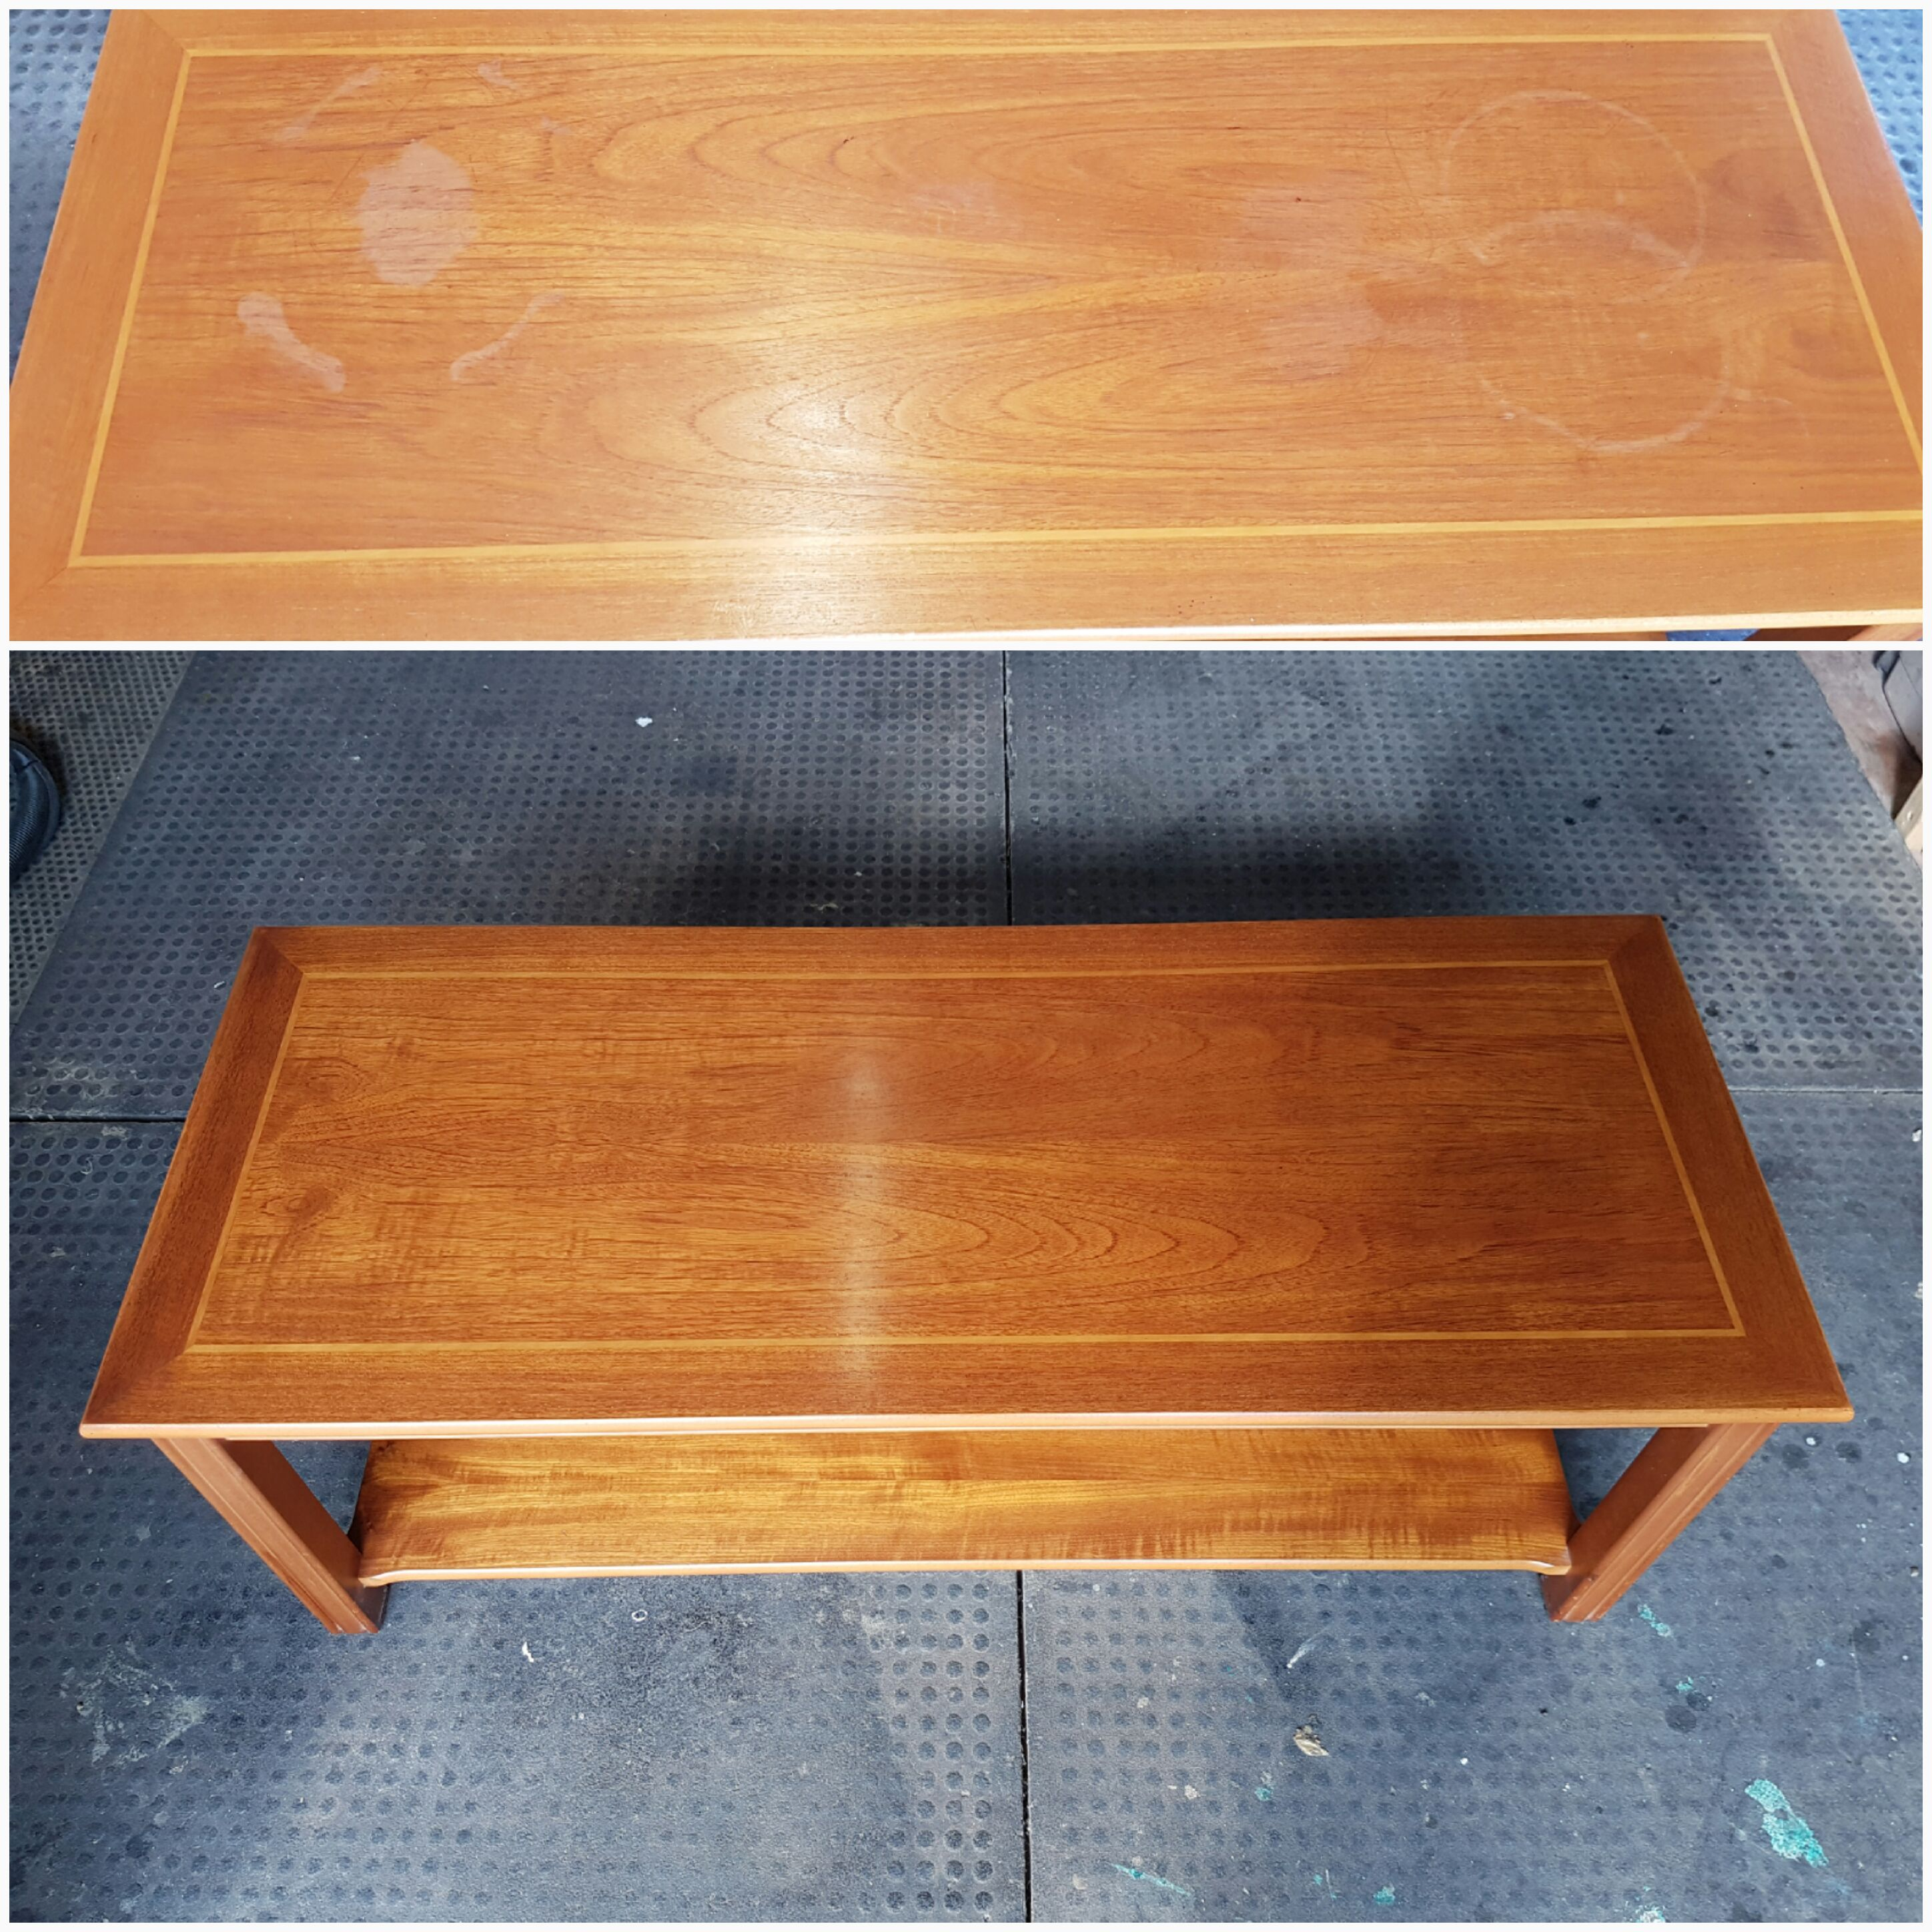 The Removal Of Water Heat Marks On A Teak Coffee Table Refinish Restore